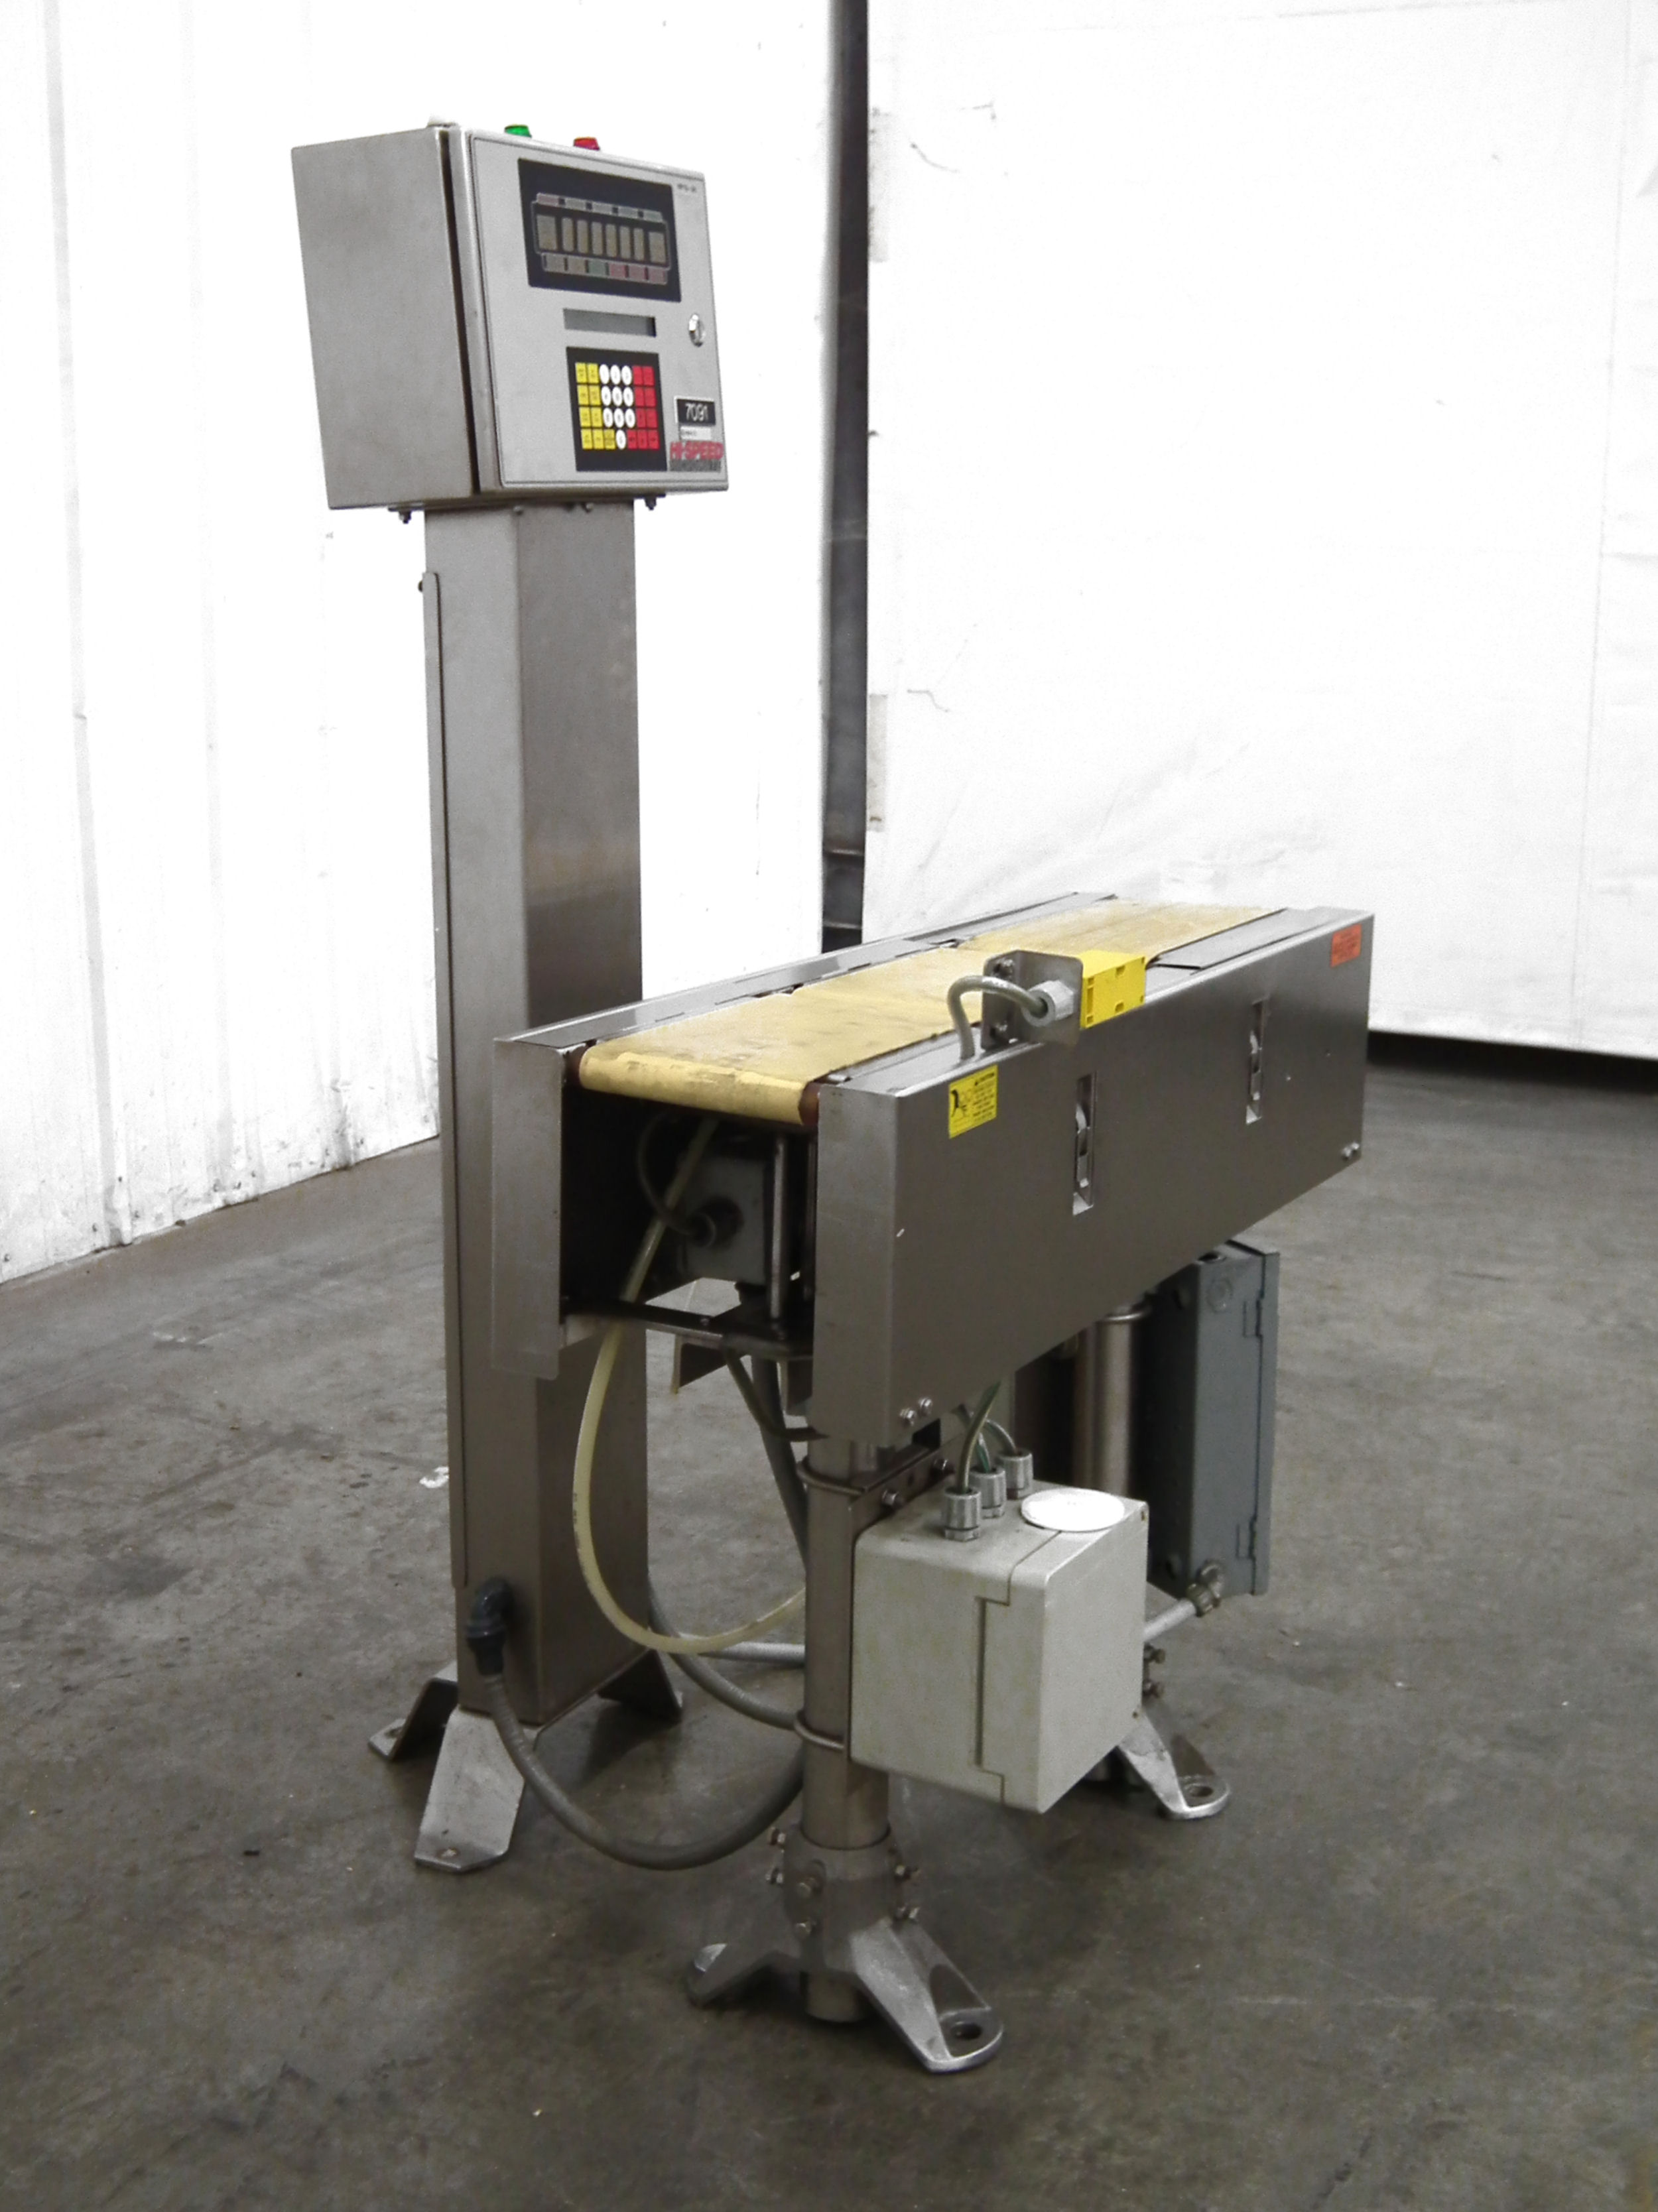 Mettler Toledo Micromate High Speed Checkweigher B3155 - Image 4 of 9